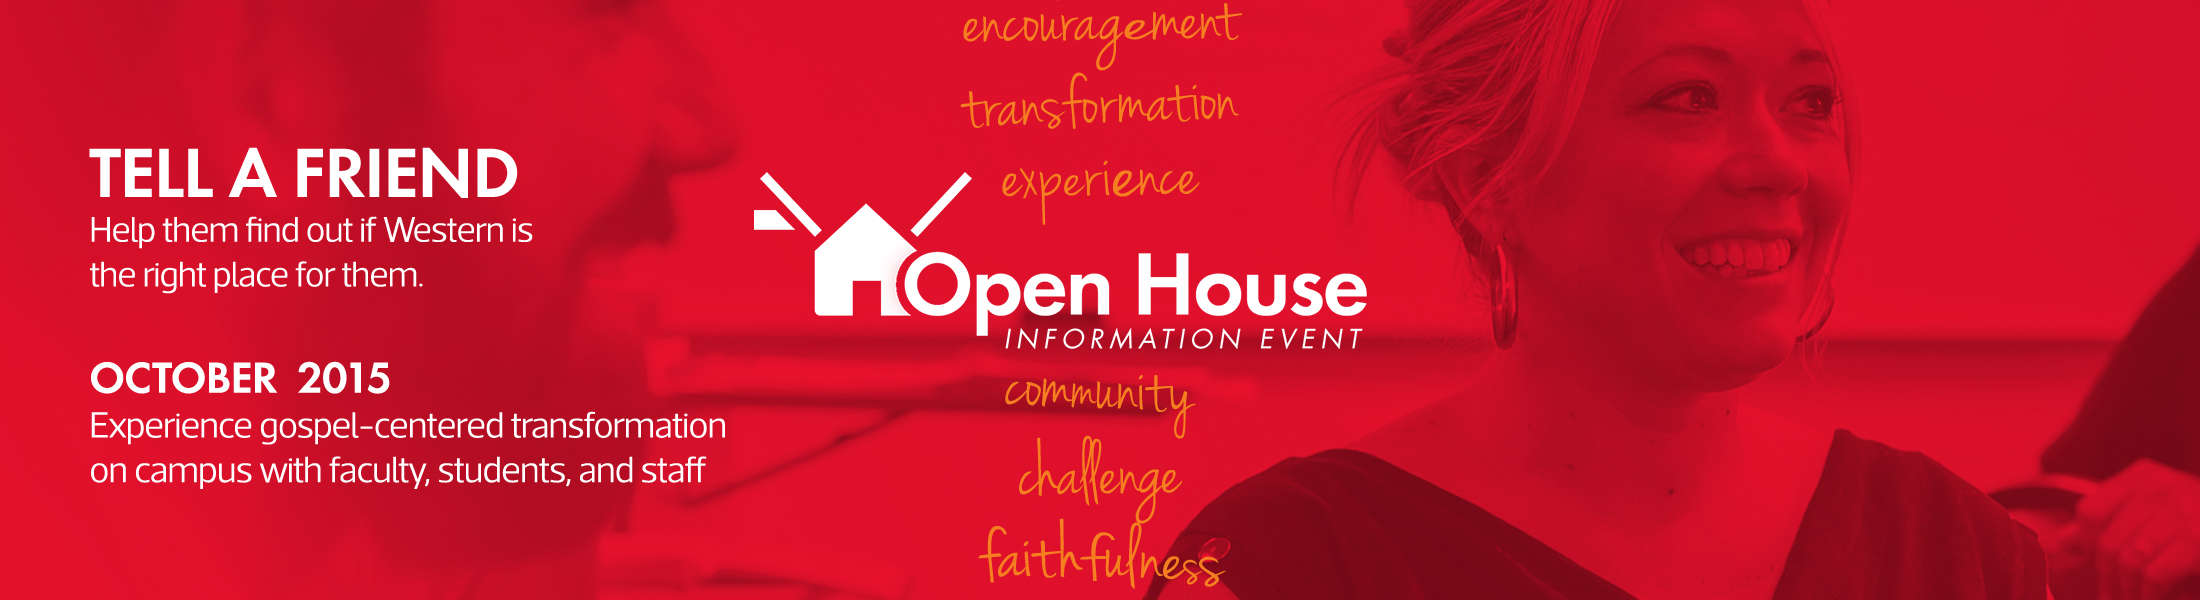 Open House Information Event - Fall 2015